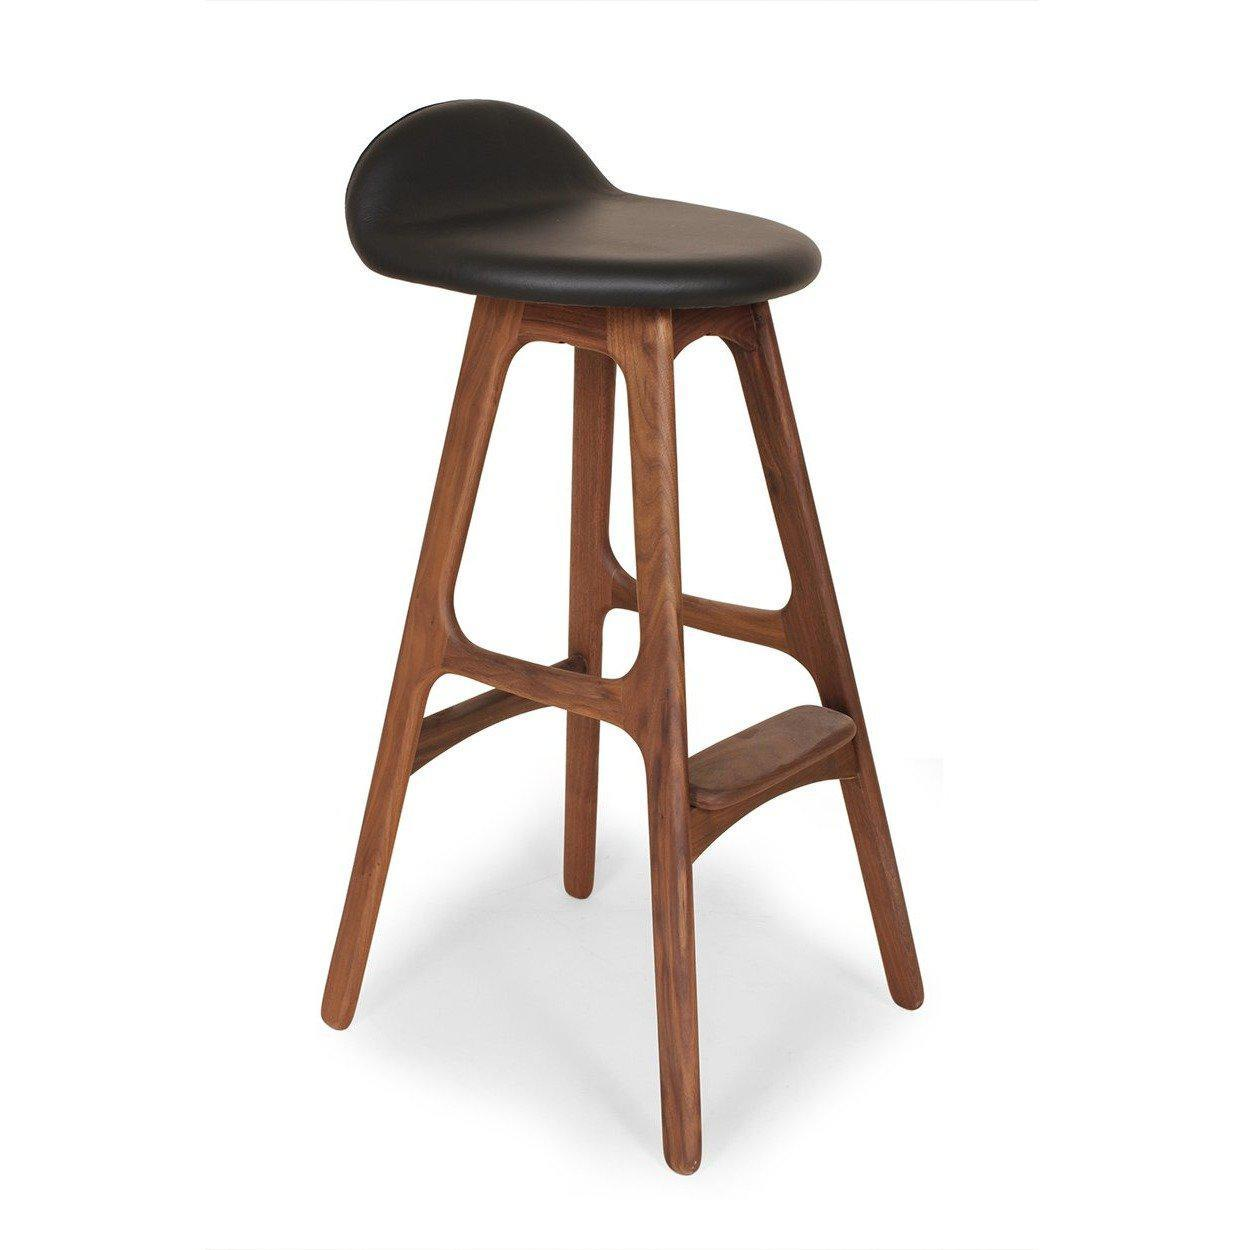 [FEB9727BBLK51] The Erik Buck Stool (bar height)